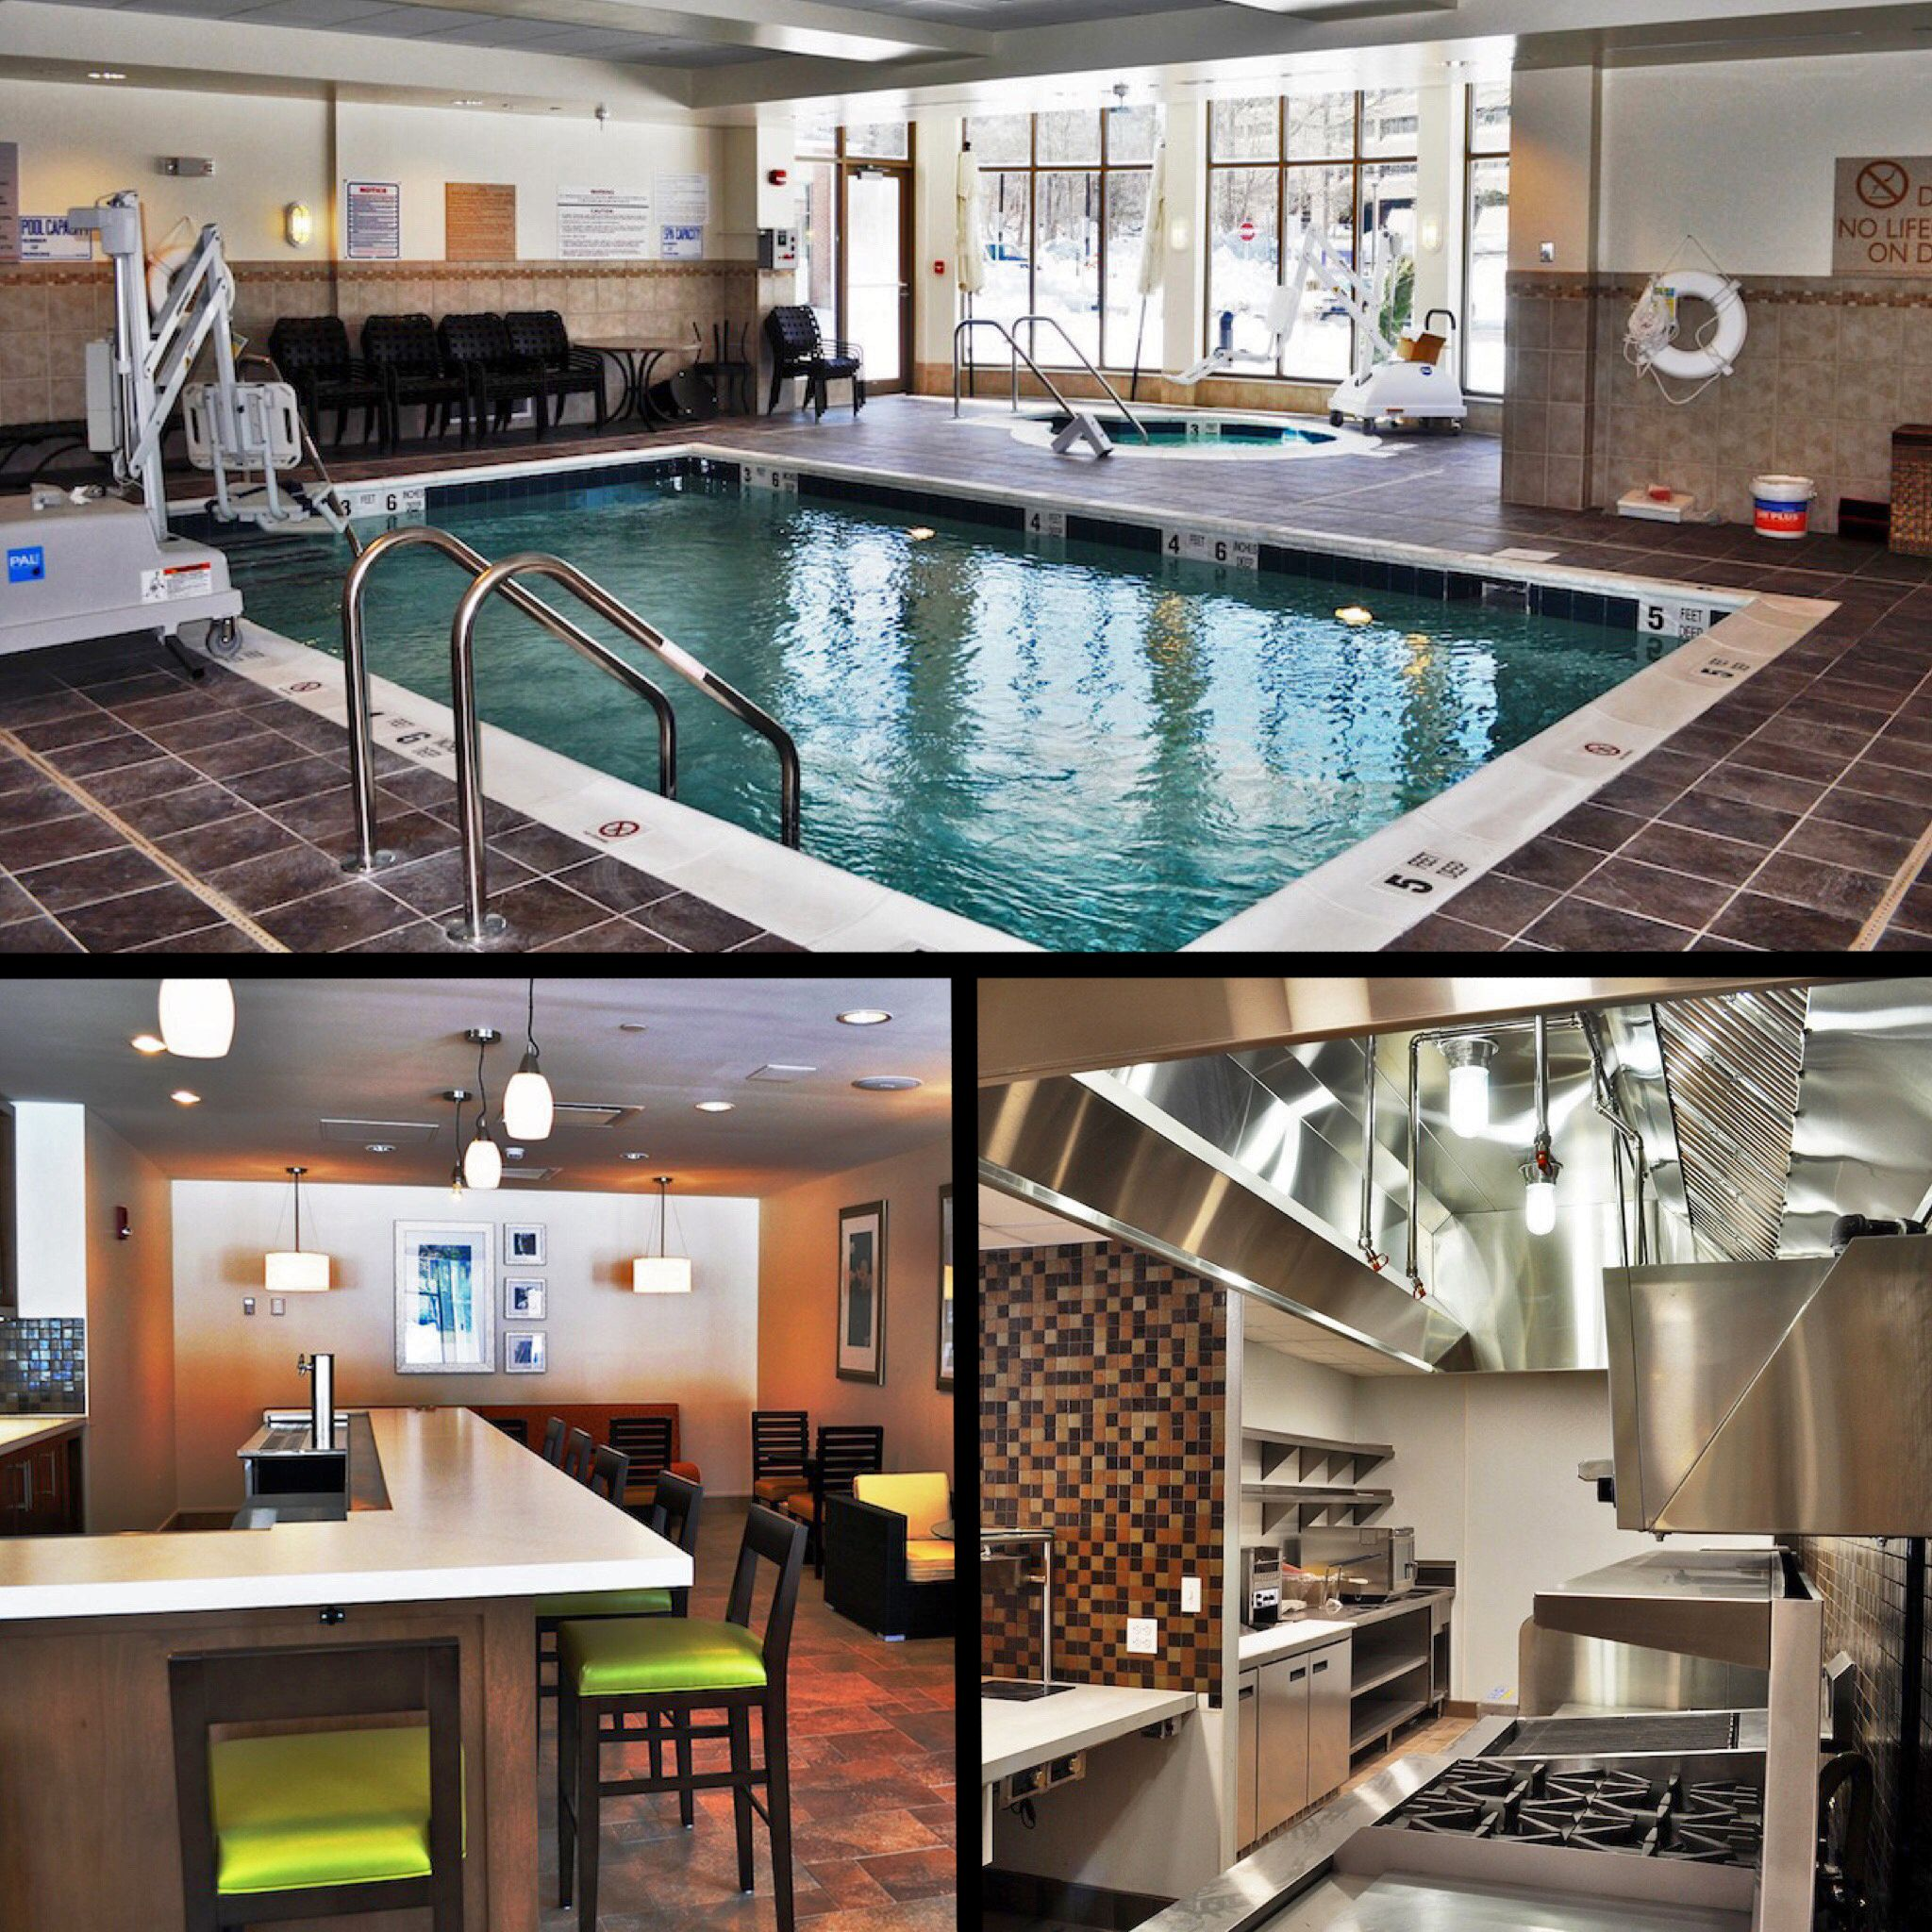 Here Is A Visual Tour Of The Interior Of The Hilton Garden Inn At SUNY Stony